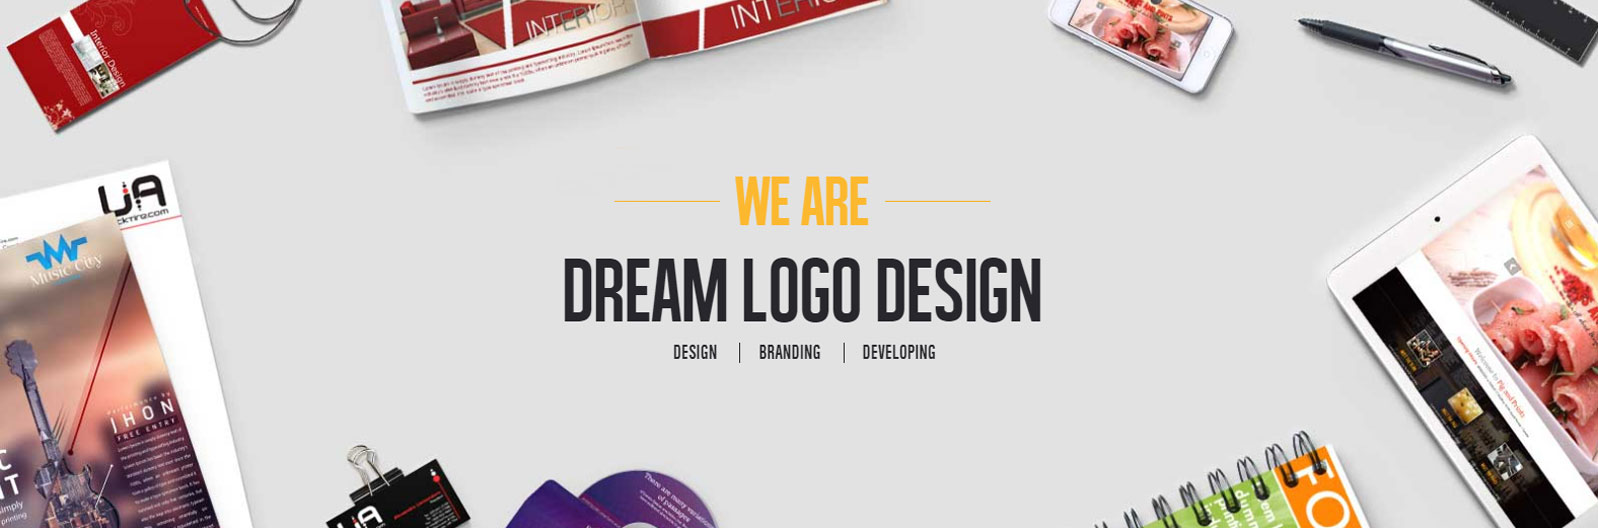 Finest Filters Healthcare Logo Design  – DreamLogoDesign